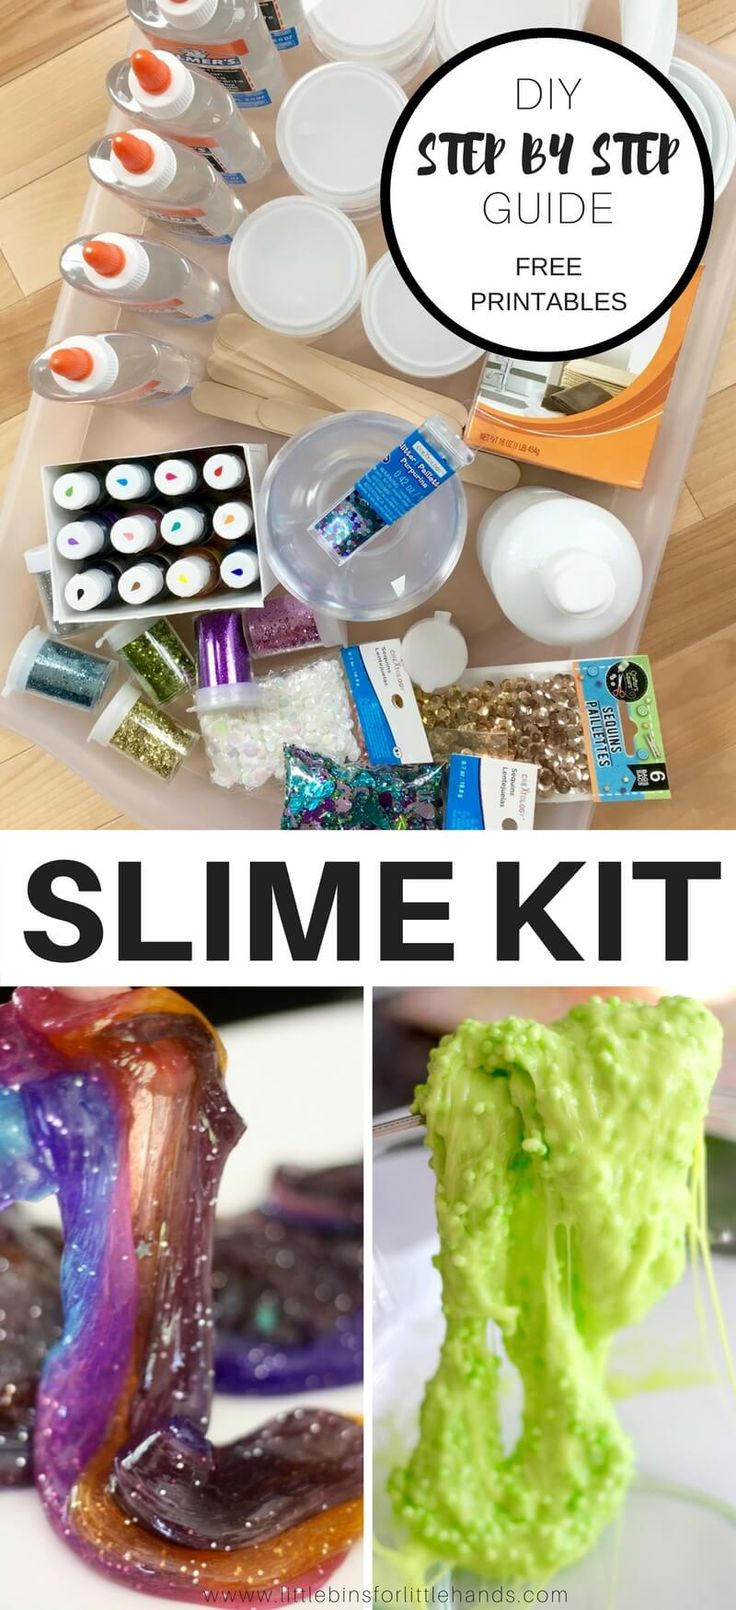 Kids go absolutely crazy for making slime today! Why bother with the dinky little kits in the store when you can put together an easy to make homemade slime kit they will use over and over again. We are going to show you step by step how to build the perfect slime kit to give your kids. Pair it with our printable slime recipe cheat sheet page and keep a slime kit handy for weekends, vacations, and stuck inside days! Homemade slime is an awesome project to share with the kids. #slime…